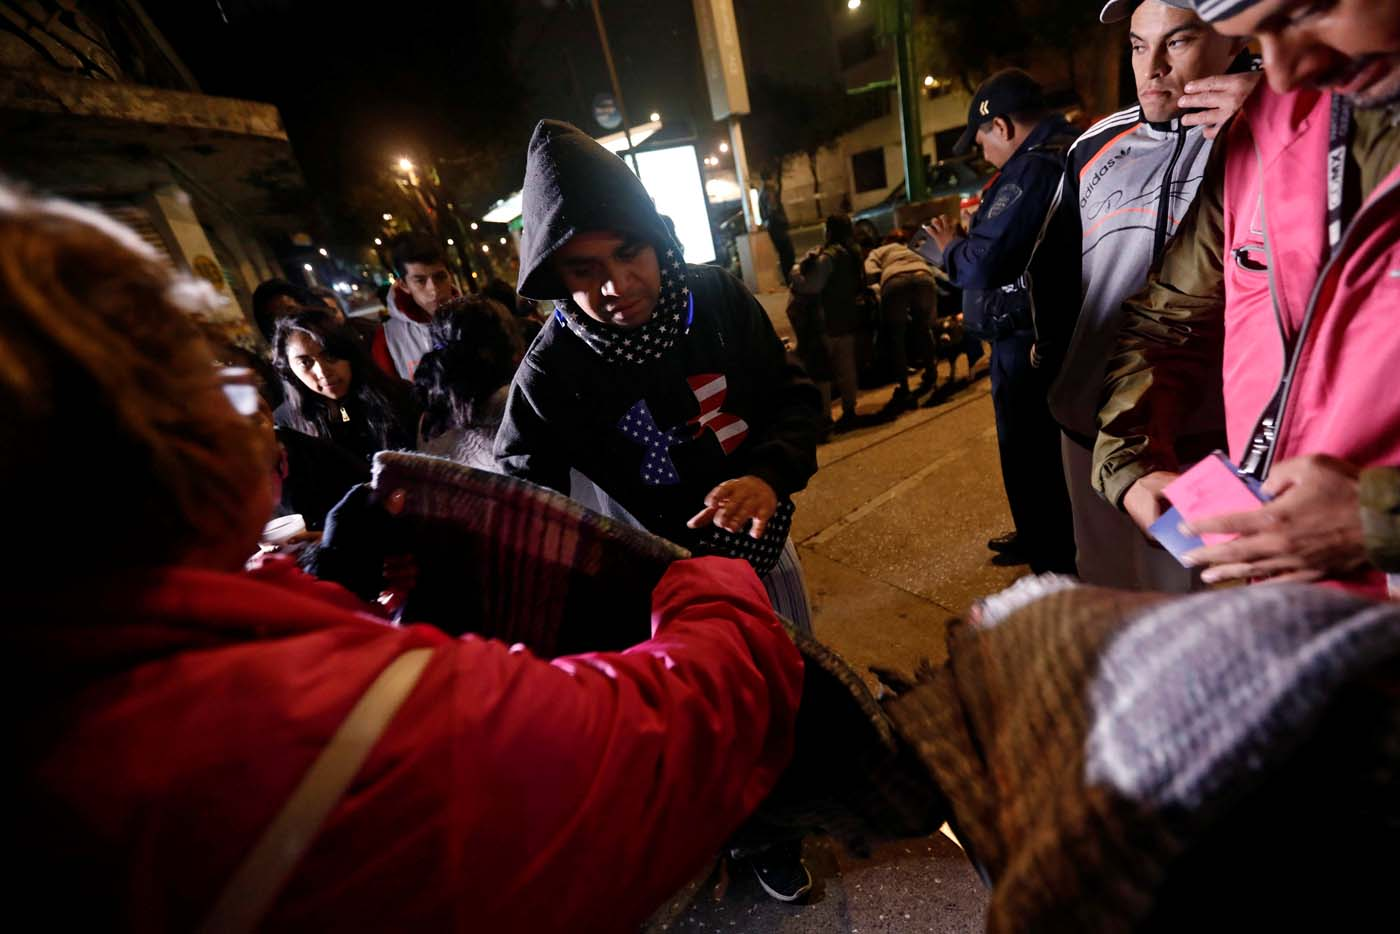 People gather on a street as they receive blankets after an earthquake hit Mexico City, Mexico, September 8, 2017. REUTERS/Edgard Garrido